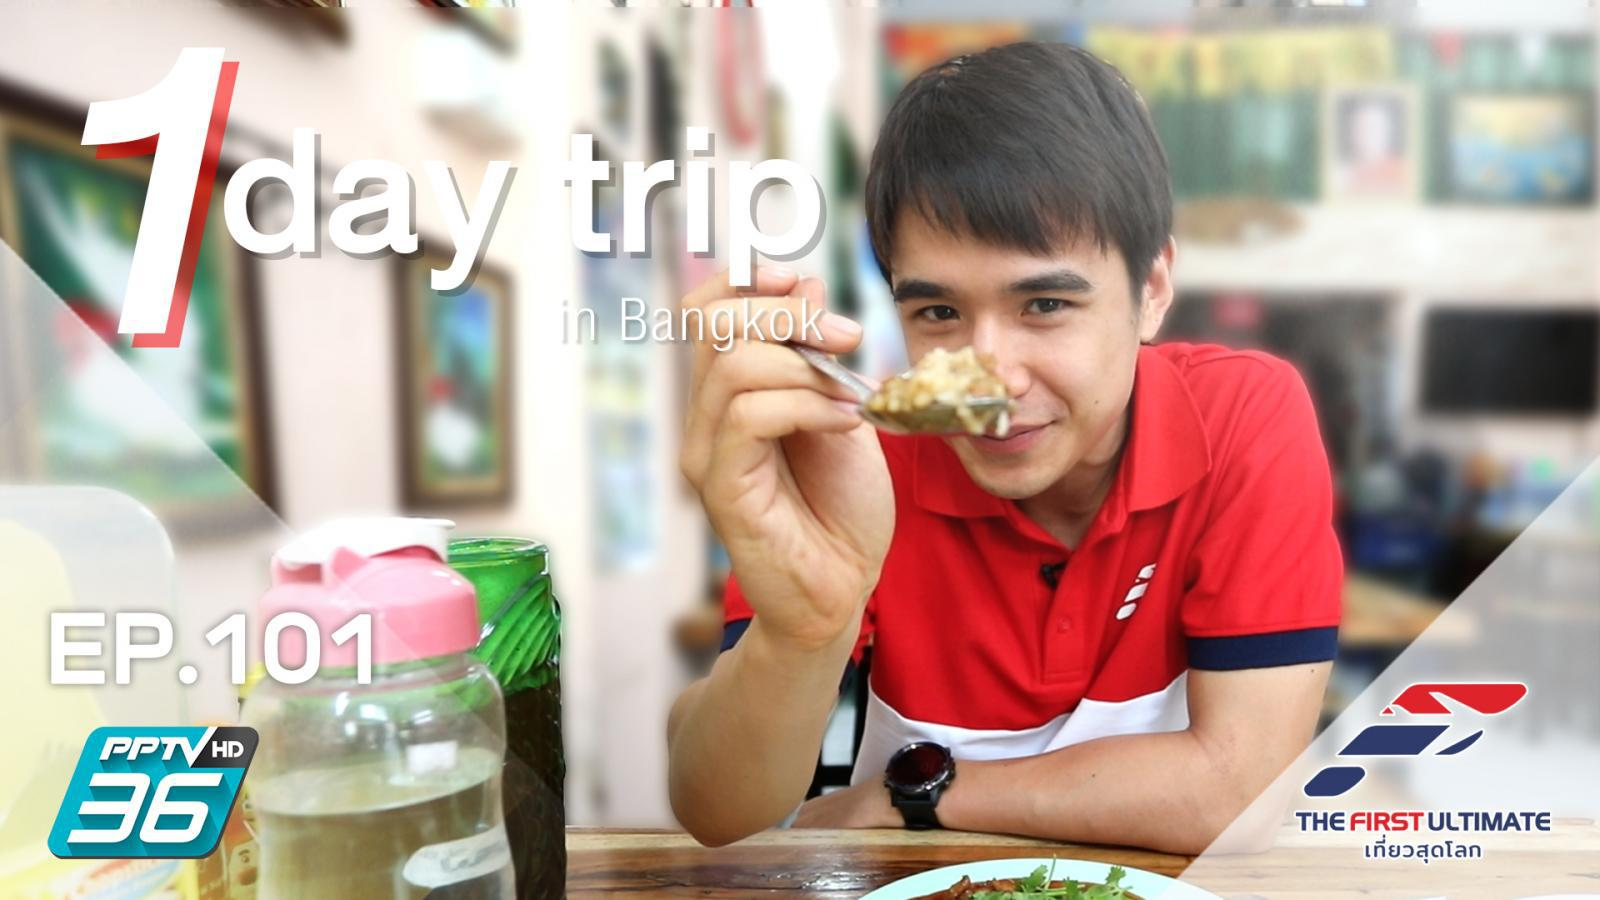 1Day trip in Bangkok, Thailand ตอน 2 : New